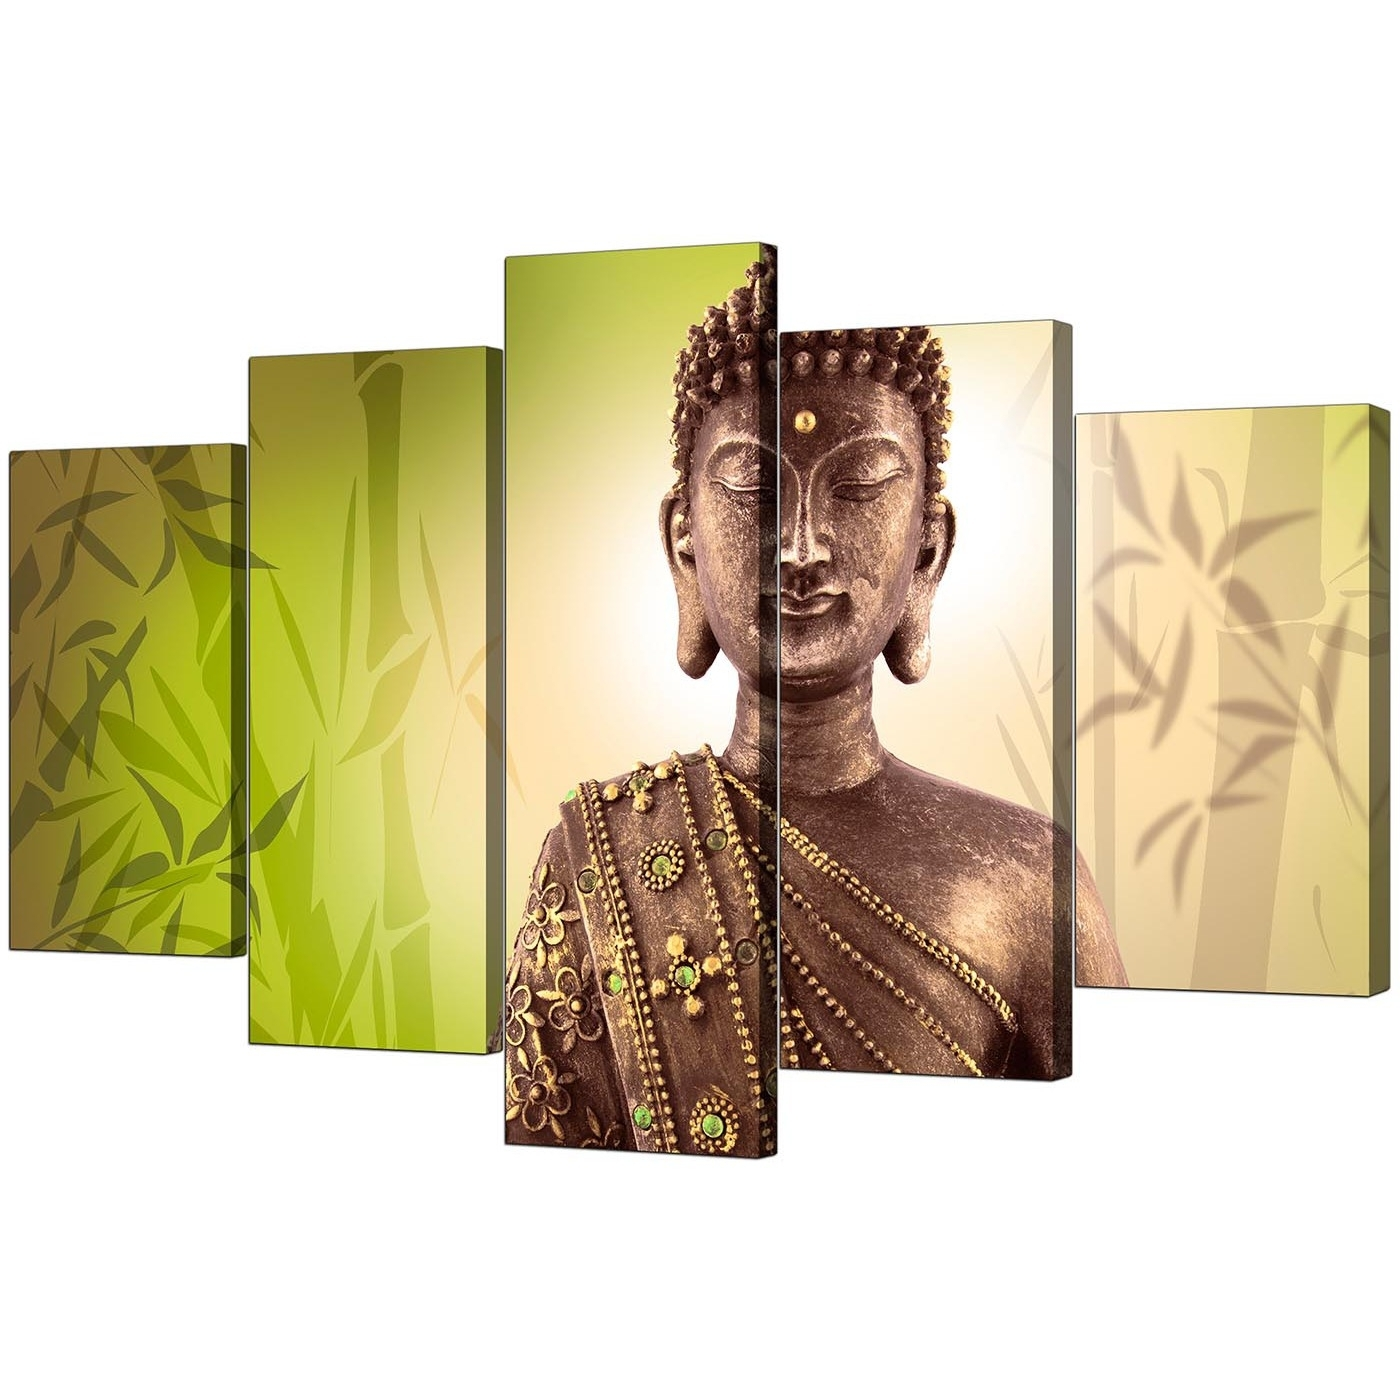 Preferred Large Green Wall Art In Extra Large Buddha Canvas Wall Art 5 Piece In Green (View 4 of 15)